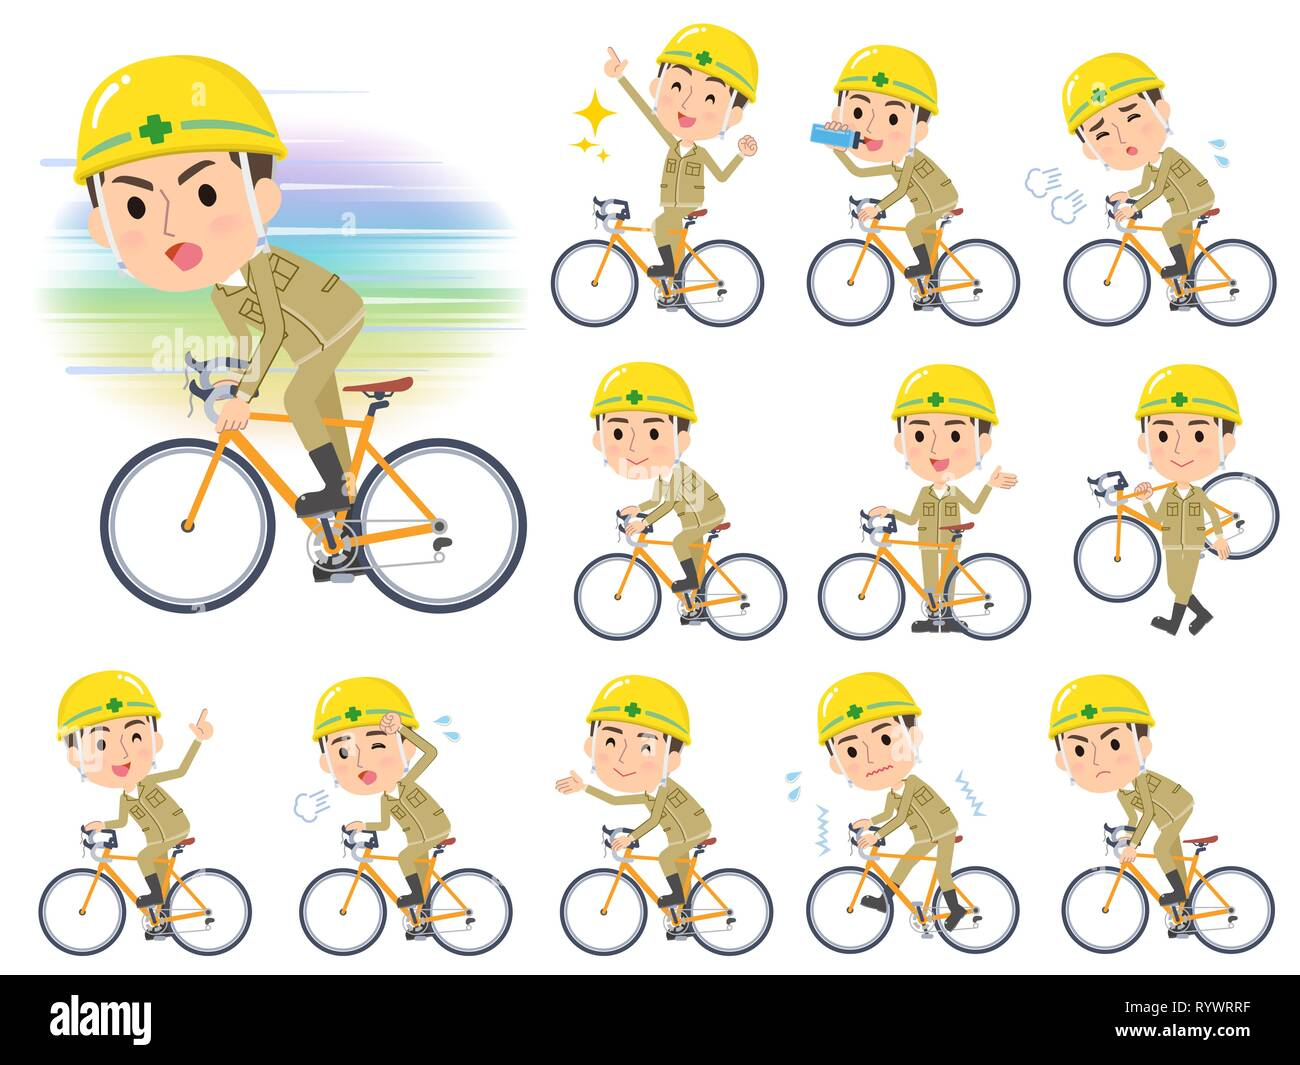 A set of working man on a road bike.There is an action that is enjoying.It's vector art so it's easy to edit. - Stock Vector